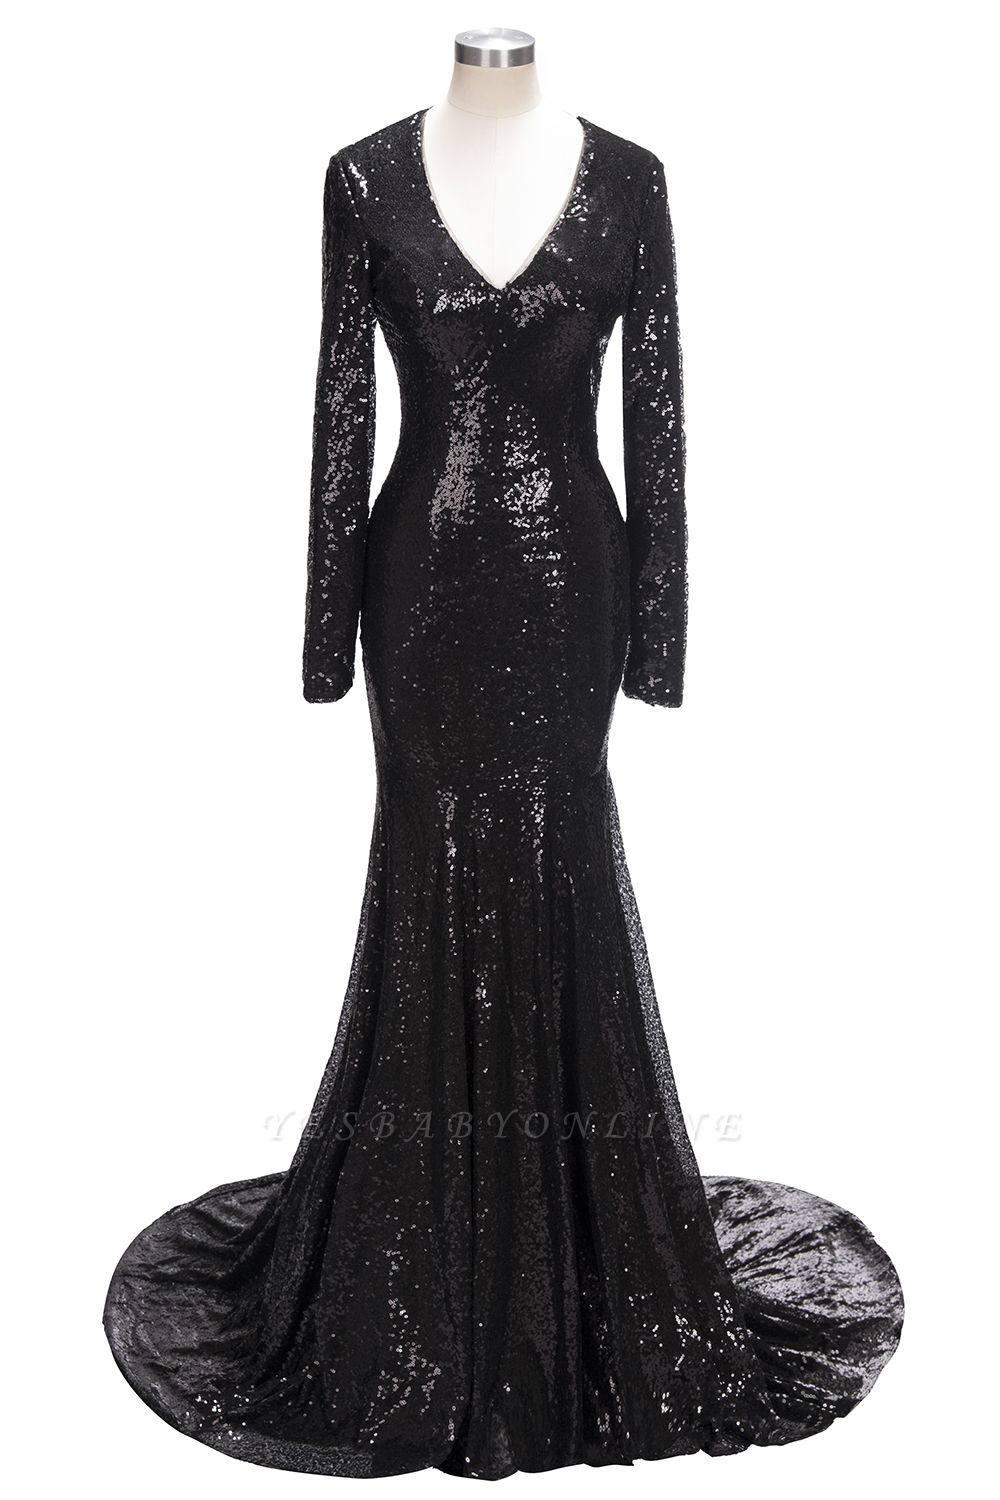 Mermaid Black Sequins Long-Sleeves Shiny V-Neck Prom Dresses